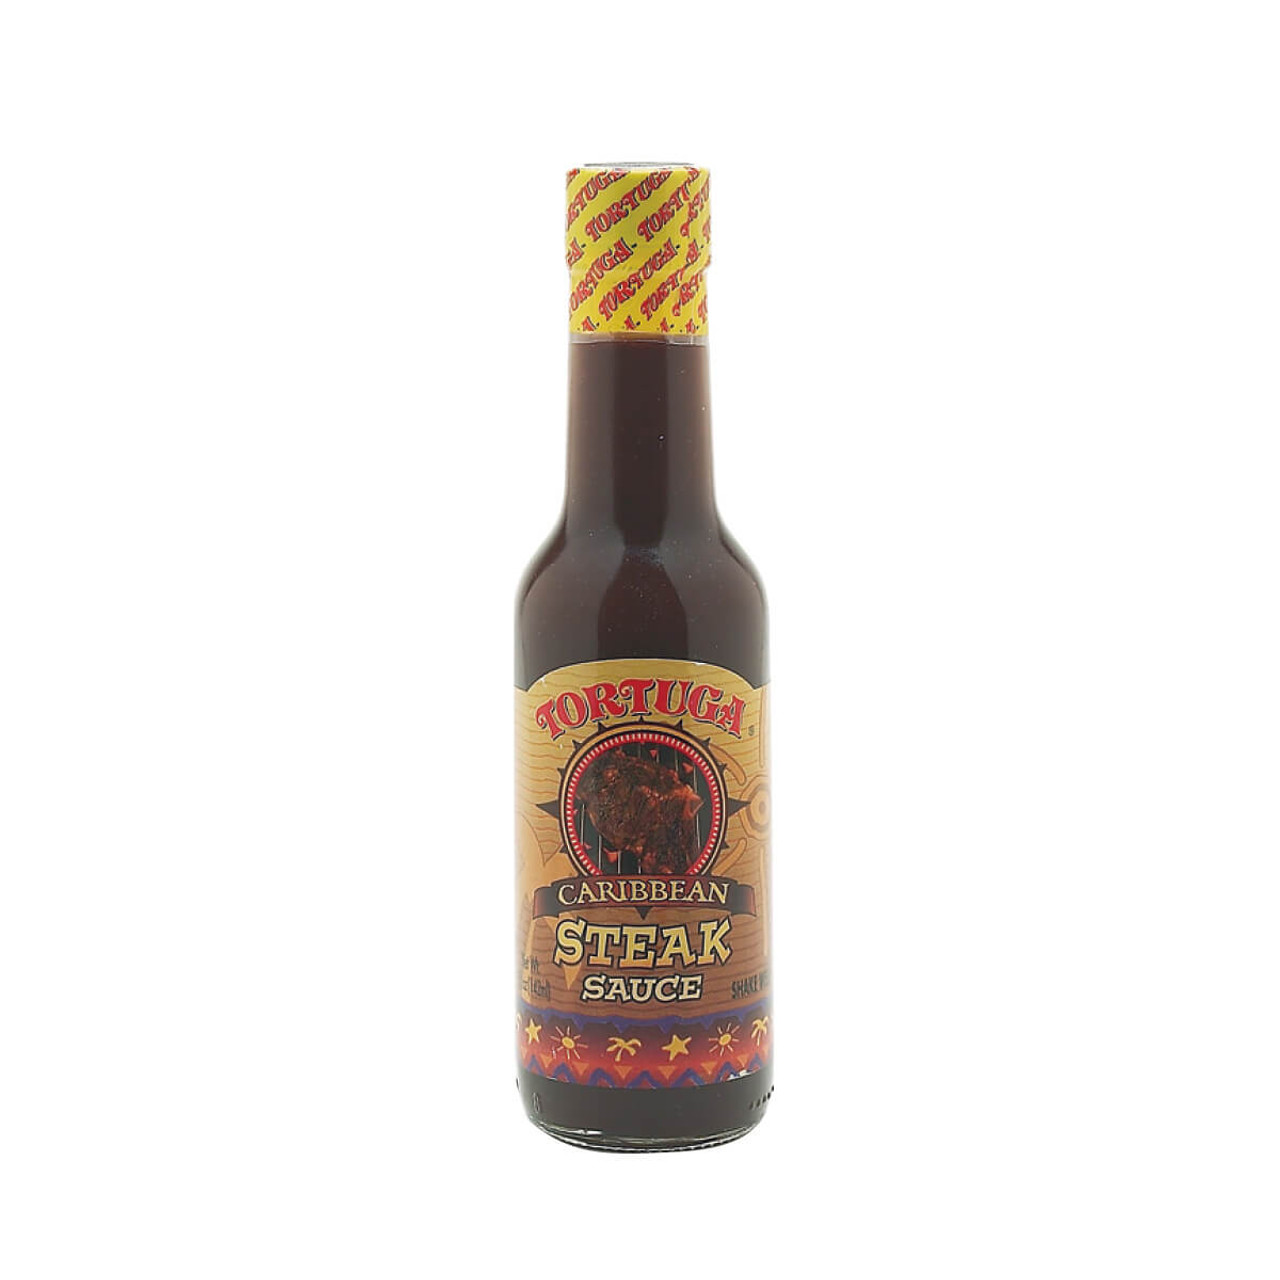 Tortuga Gourmet Steak Sauce 6 Bottles